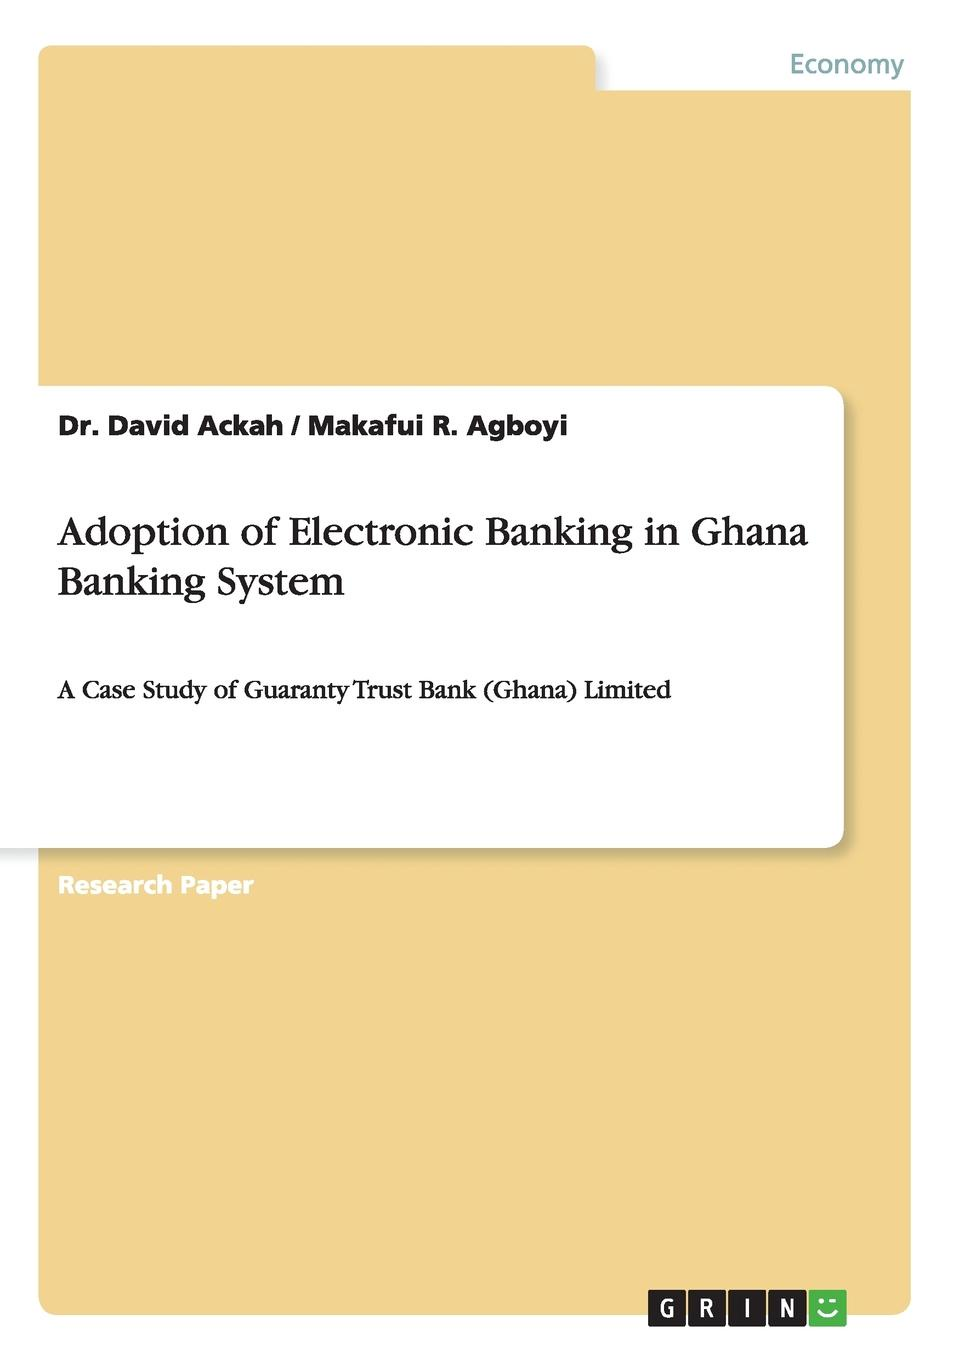 Dr. David Ackah, Makafui R. Agboyi Adoption of Electronic Banking in Ghana Banking System ishfaq ahmed and tehmina fiaz qazi mobile phone adoption a habit or necessity